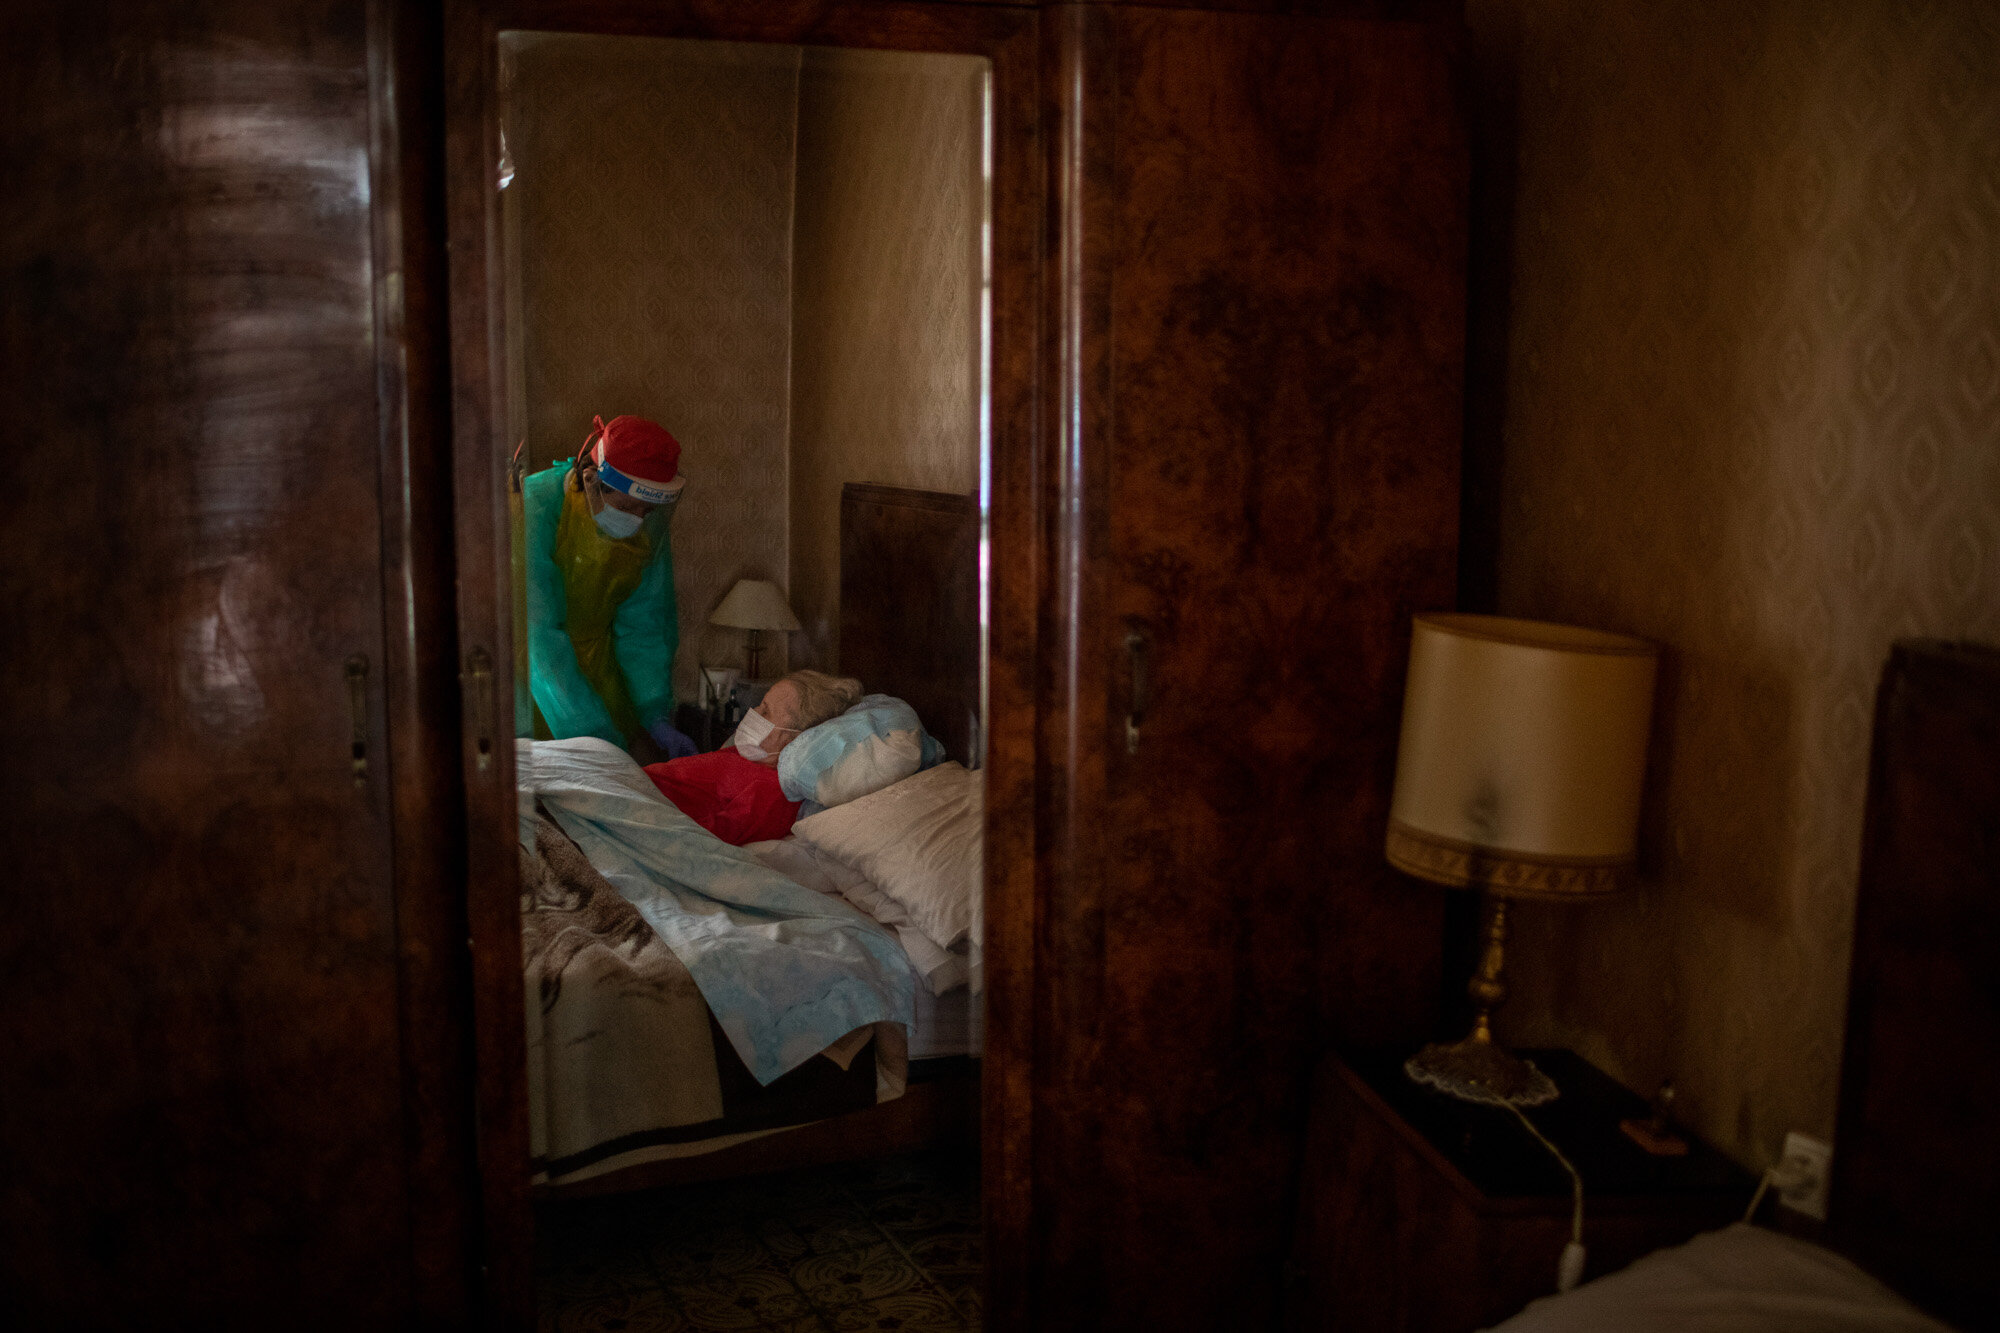 """Josefa Ribas, 86, who is bedridden and suffers from dementia, is attended to by nurse Laura Valdes during a home care visit in Barcelona, Spain, on April 7, 2020. Ribas' husband, Jose Marcos, fears what will happen if the coronavirus enters their home and infects them. """"I survived the post-war period (of mass hunger). I hope I survive this pandemic,"""" he said. (AP Photo/Emilio Morenatti)"""